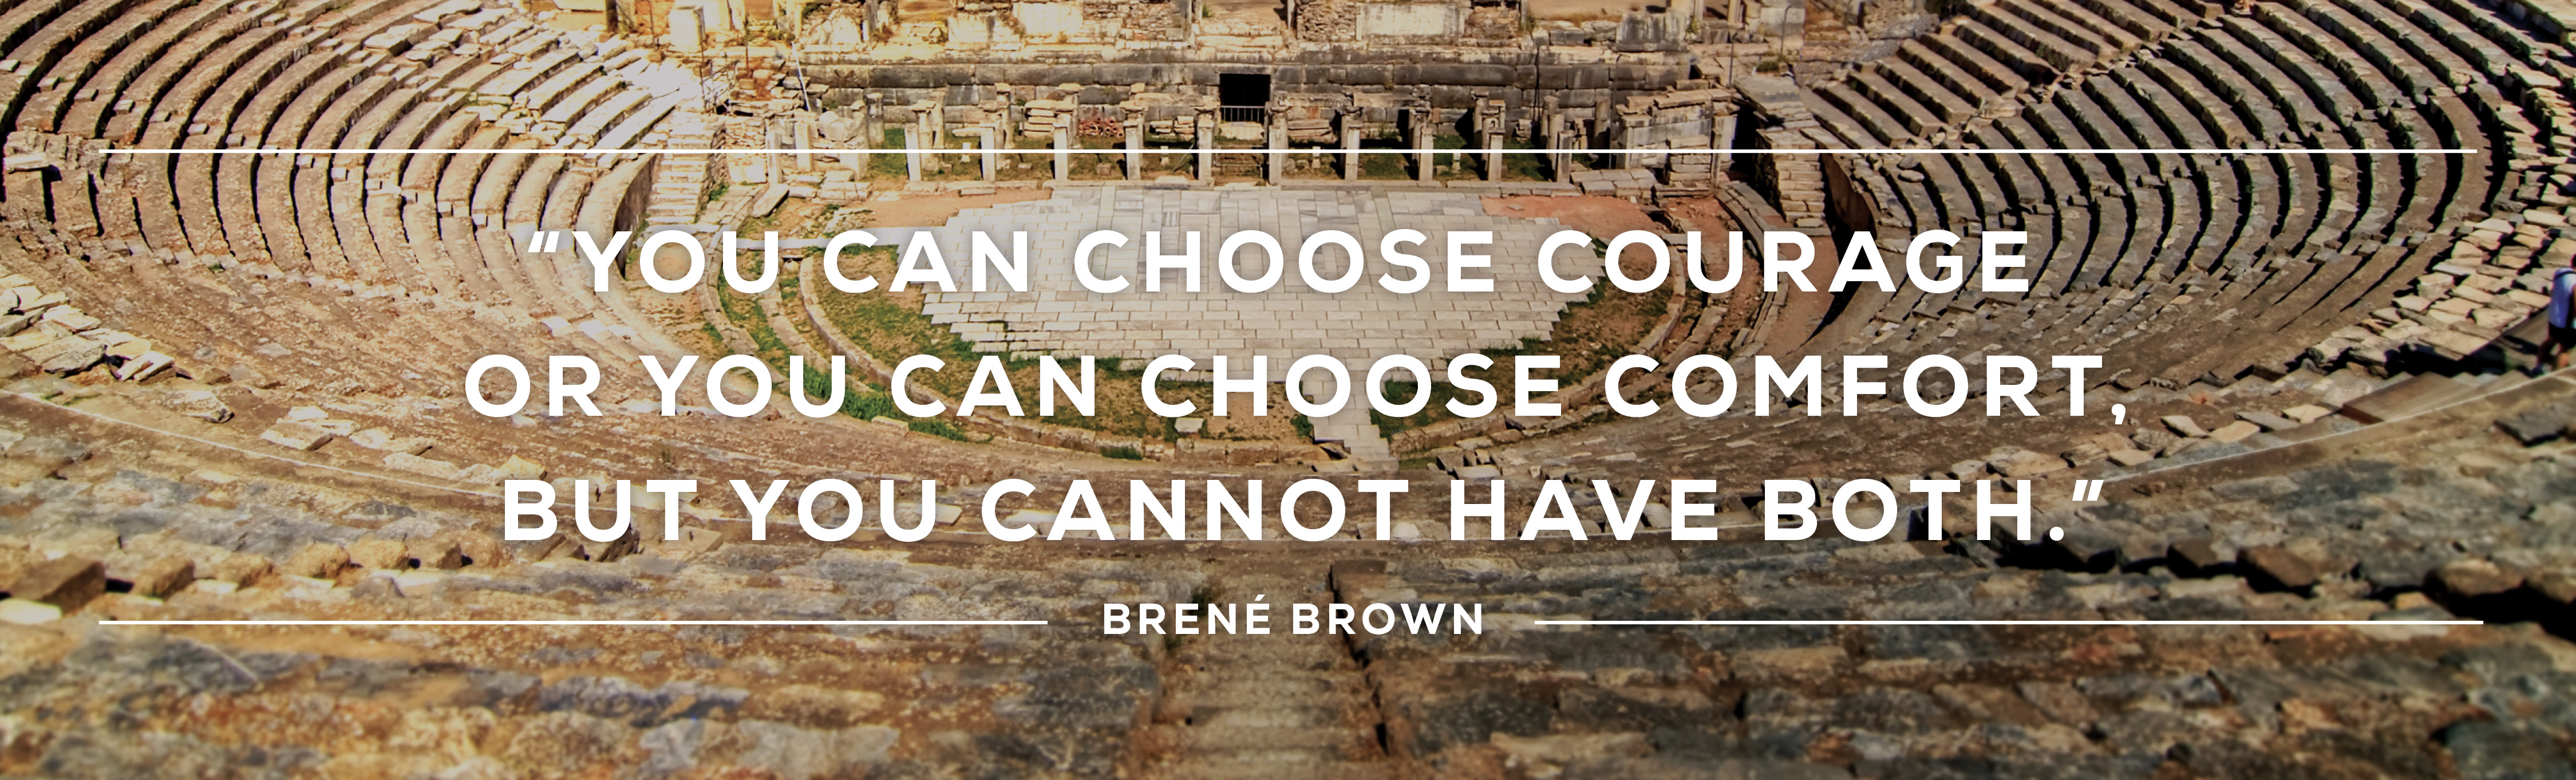 Courage over comfort Brene Brown